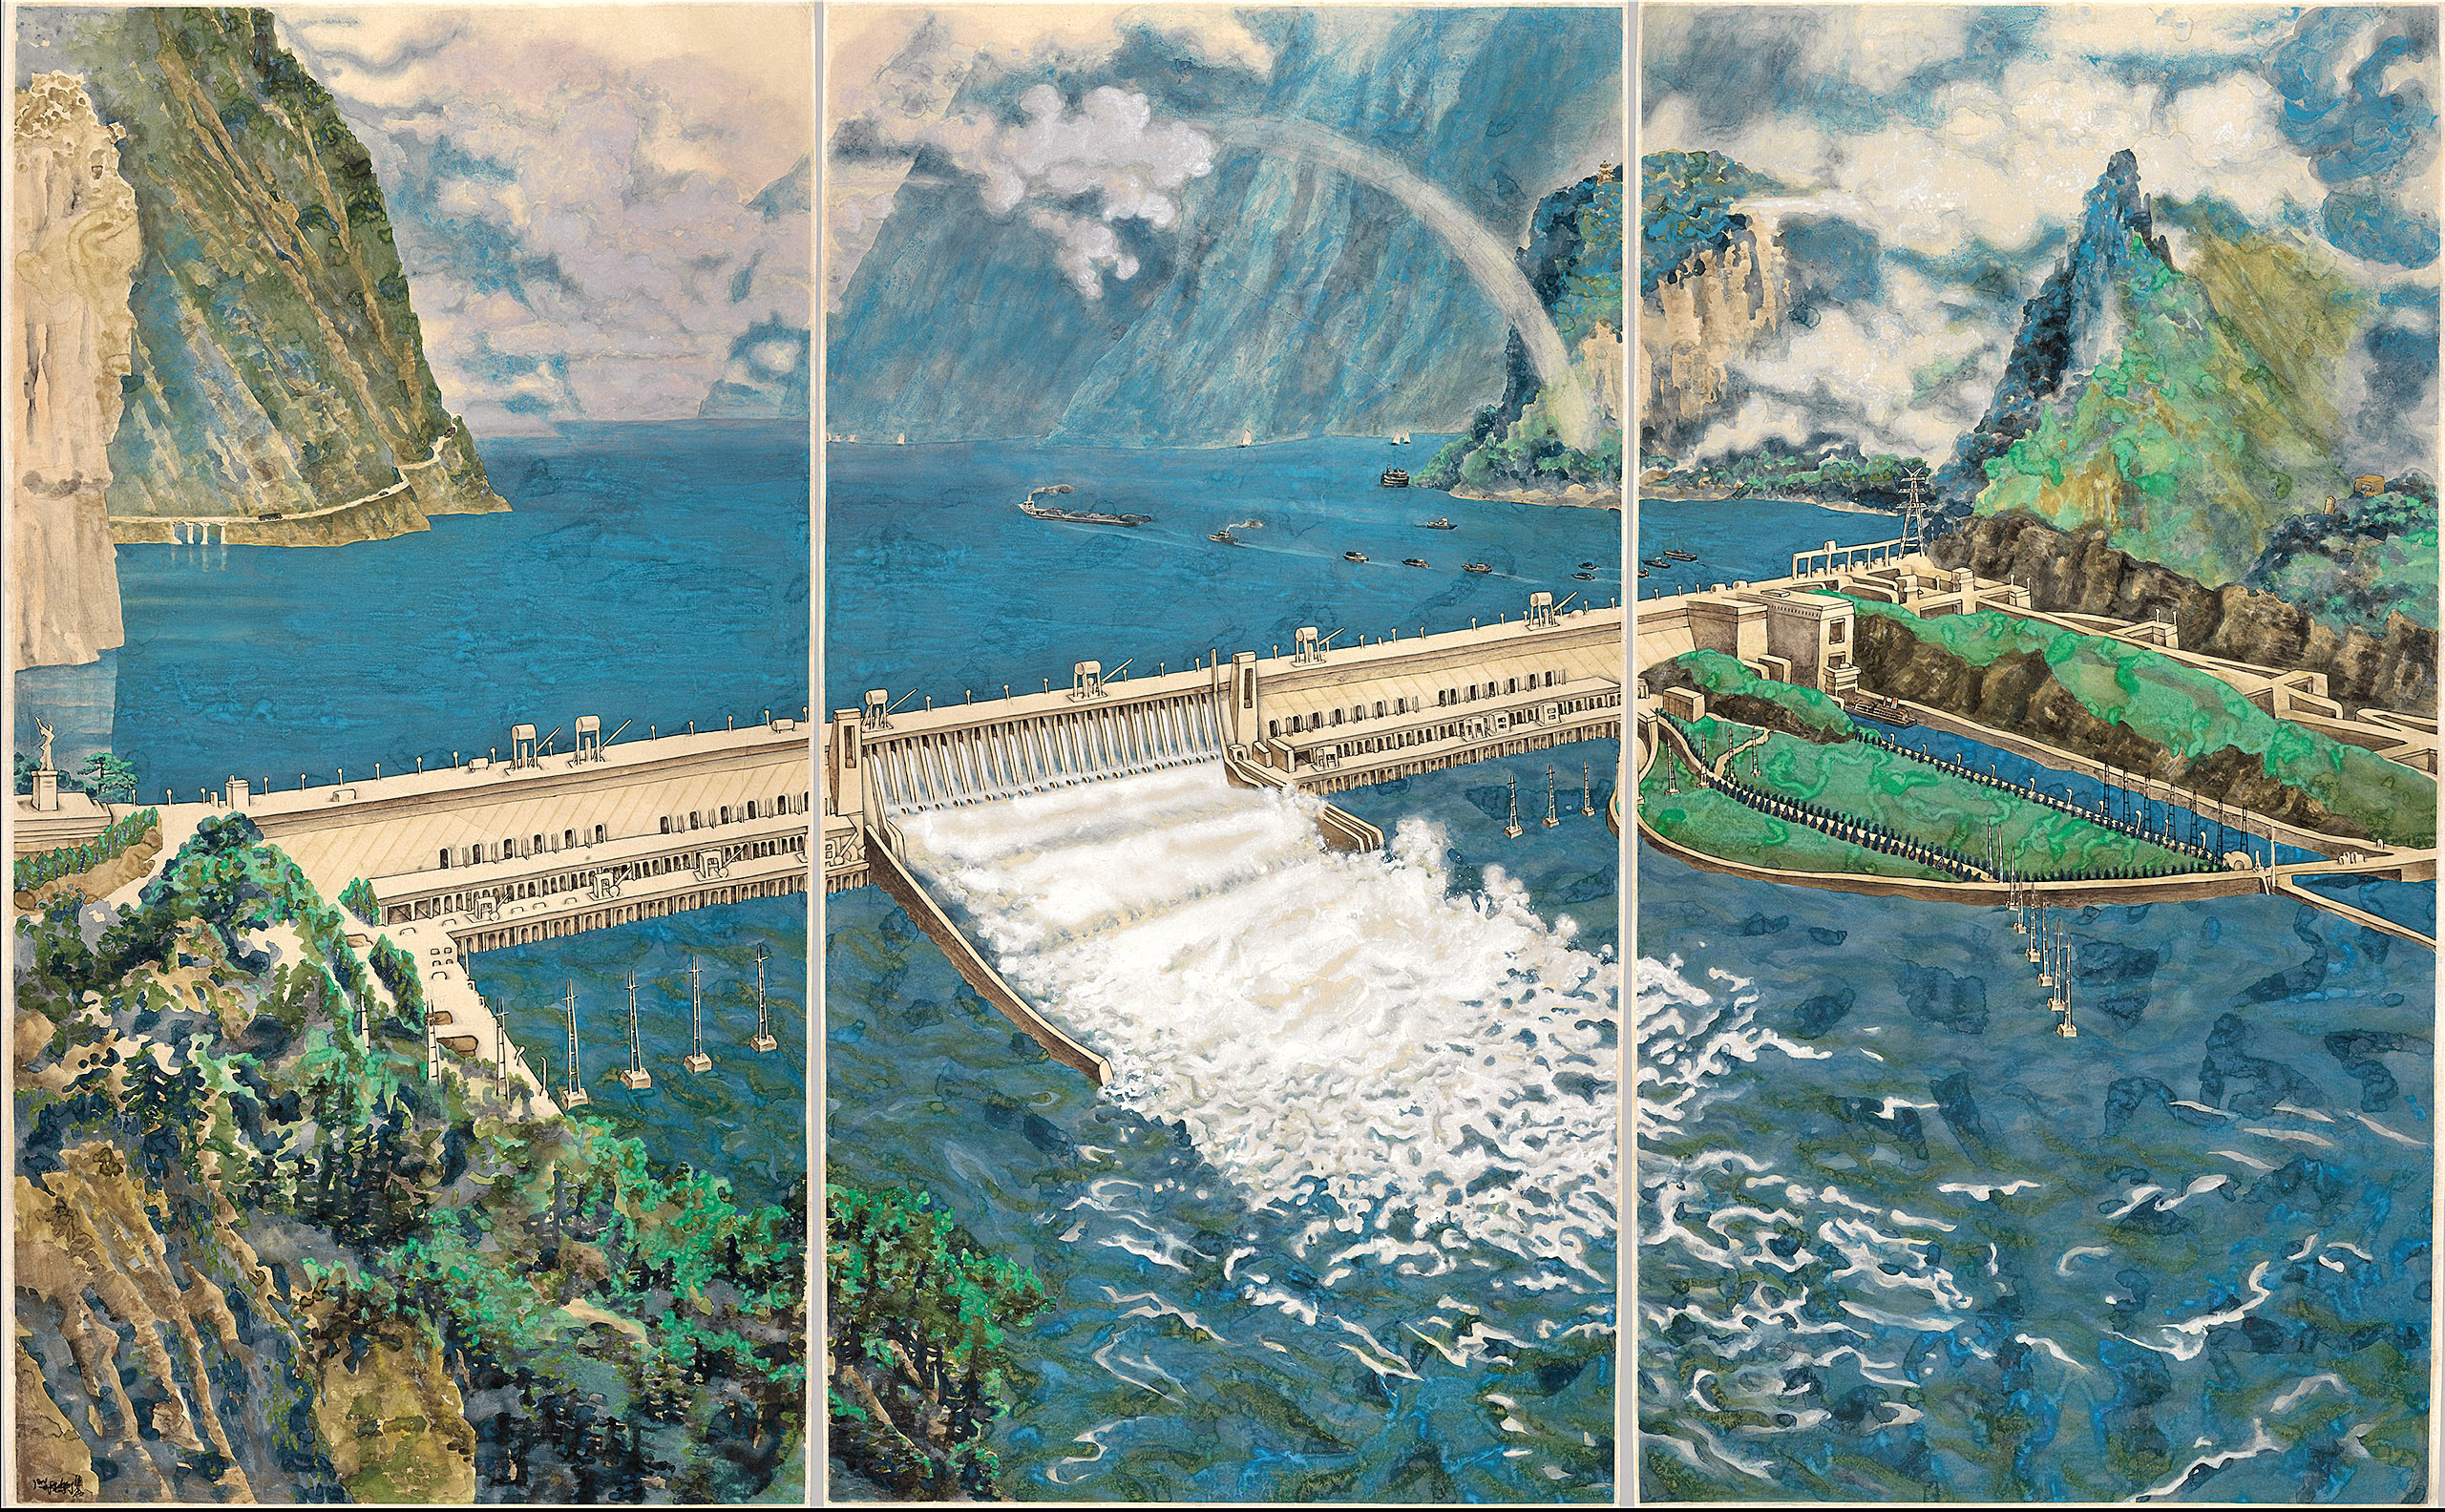 gorges dam essay Due to its enormous scale, the three gorges project is quite interesting in terms of economic impact, even despite the lack of data and evidence (due to th.